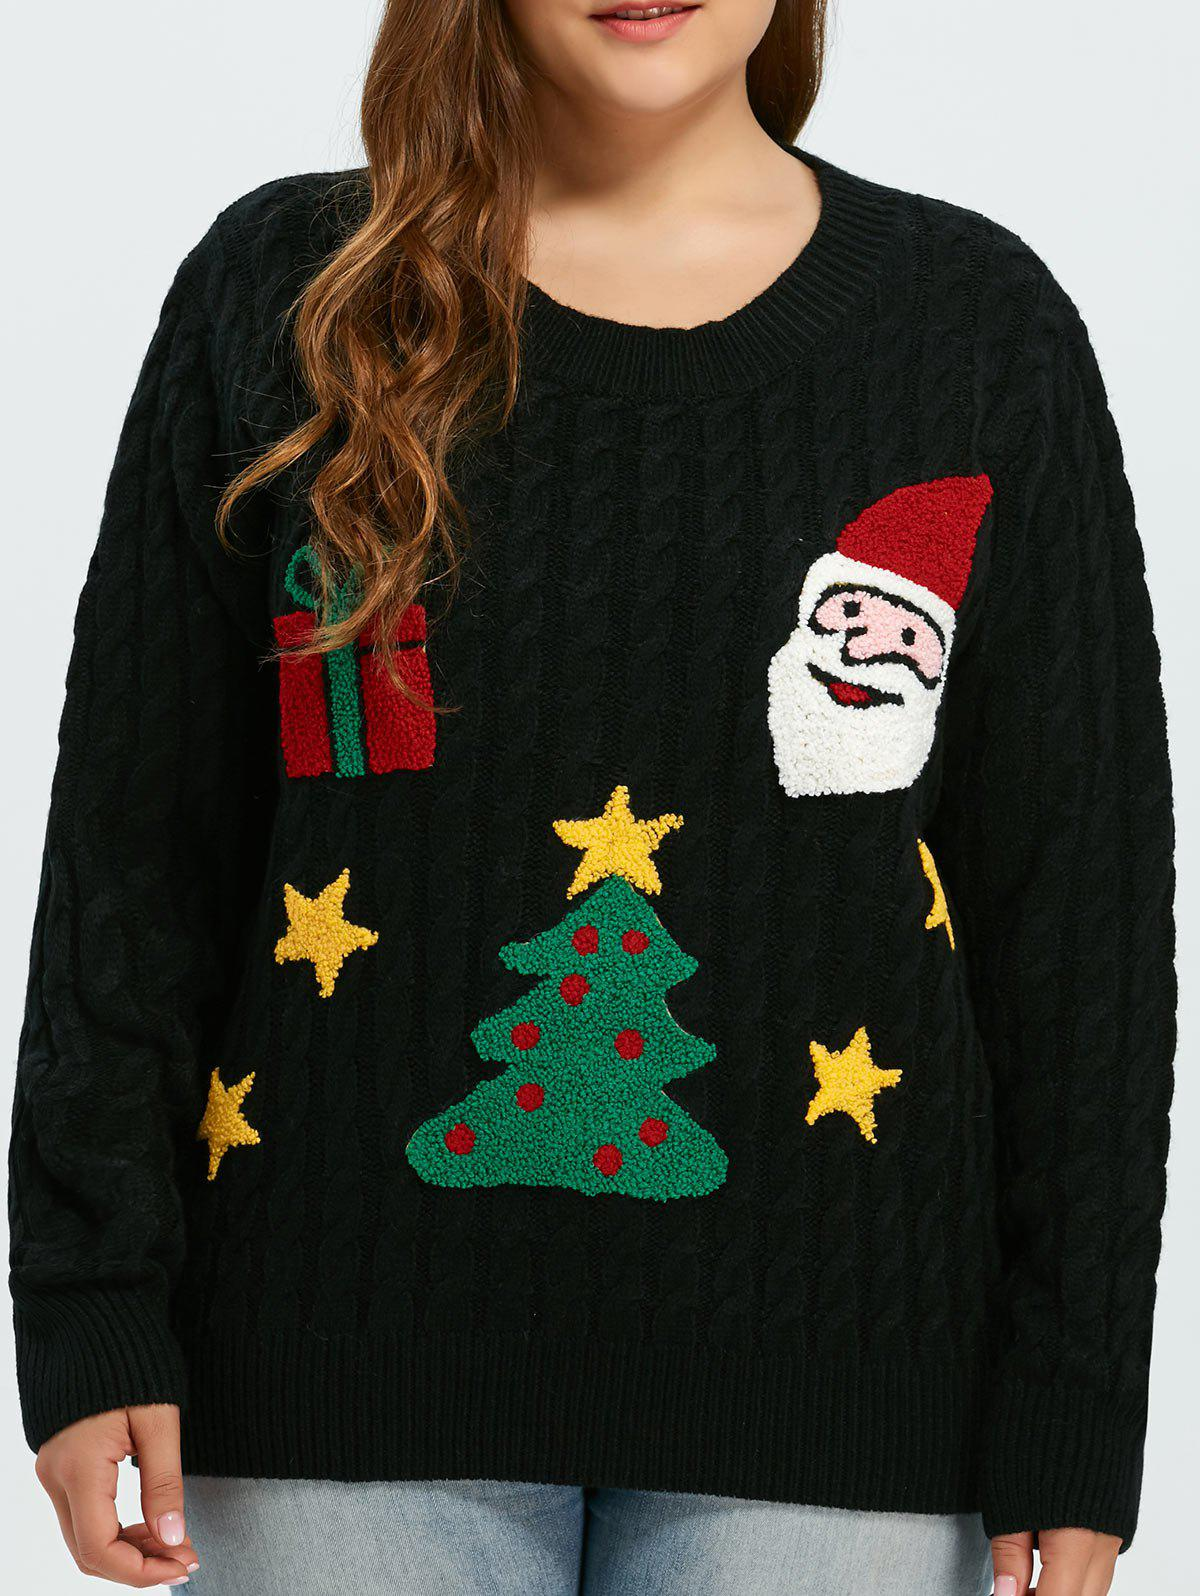 Flocked Tree and Gift Pattern Christmas Sweater - BLACK ONE SIZE